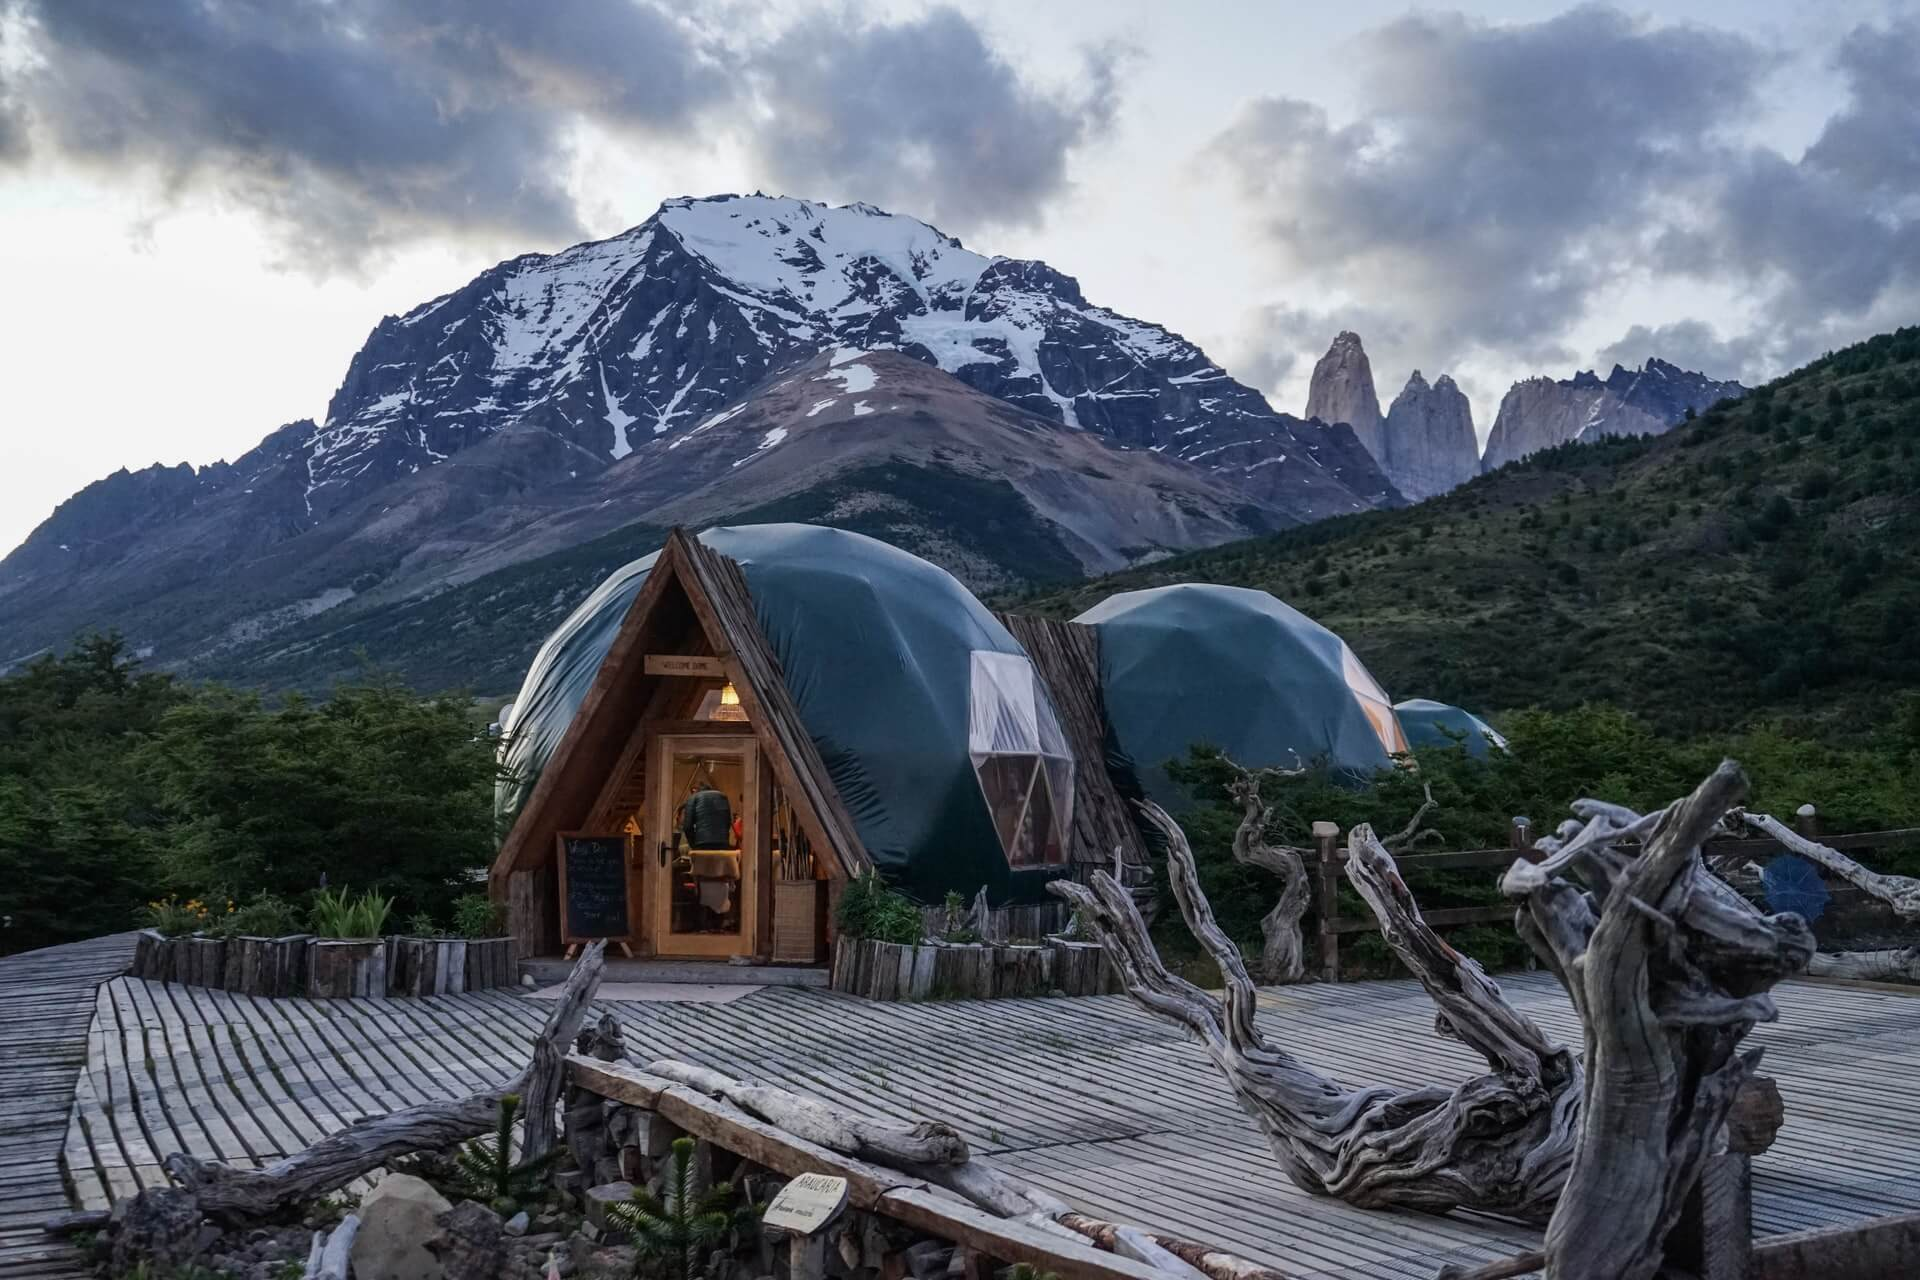 An outdoor accommodation booked through Booking.com while looking for cheap hotels